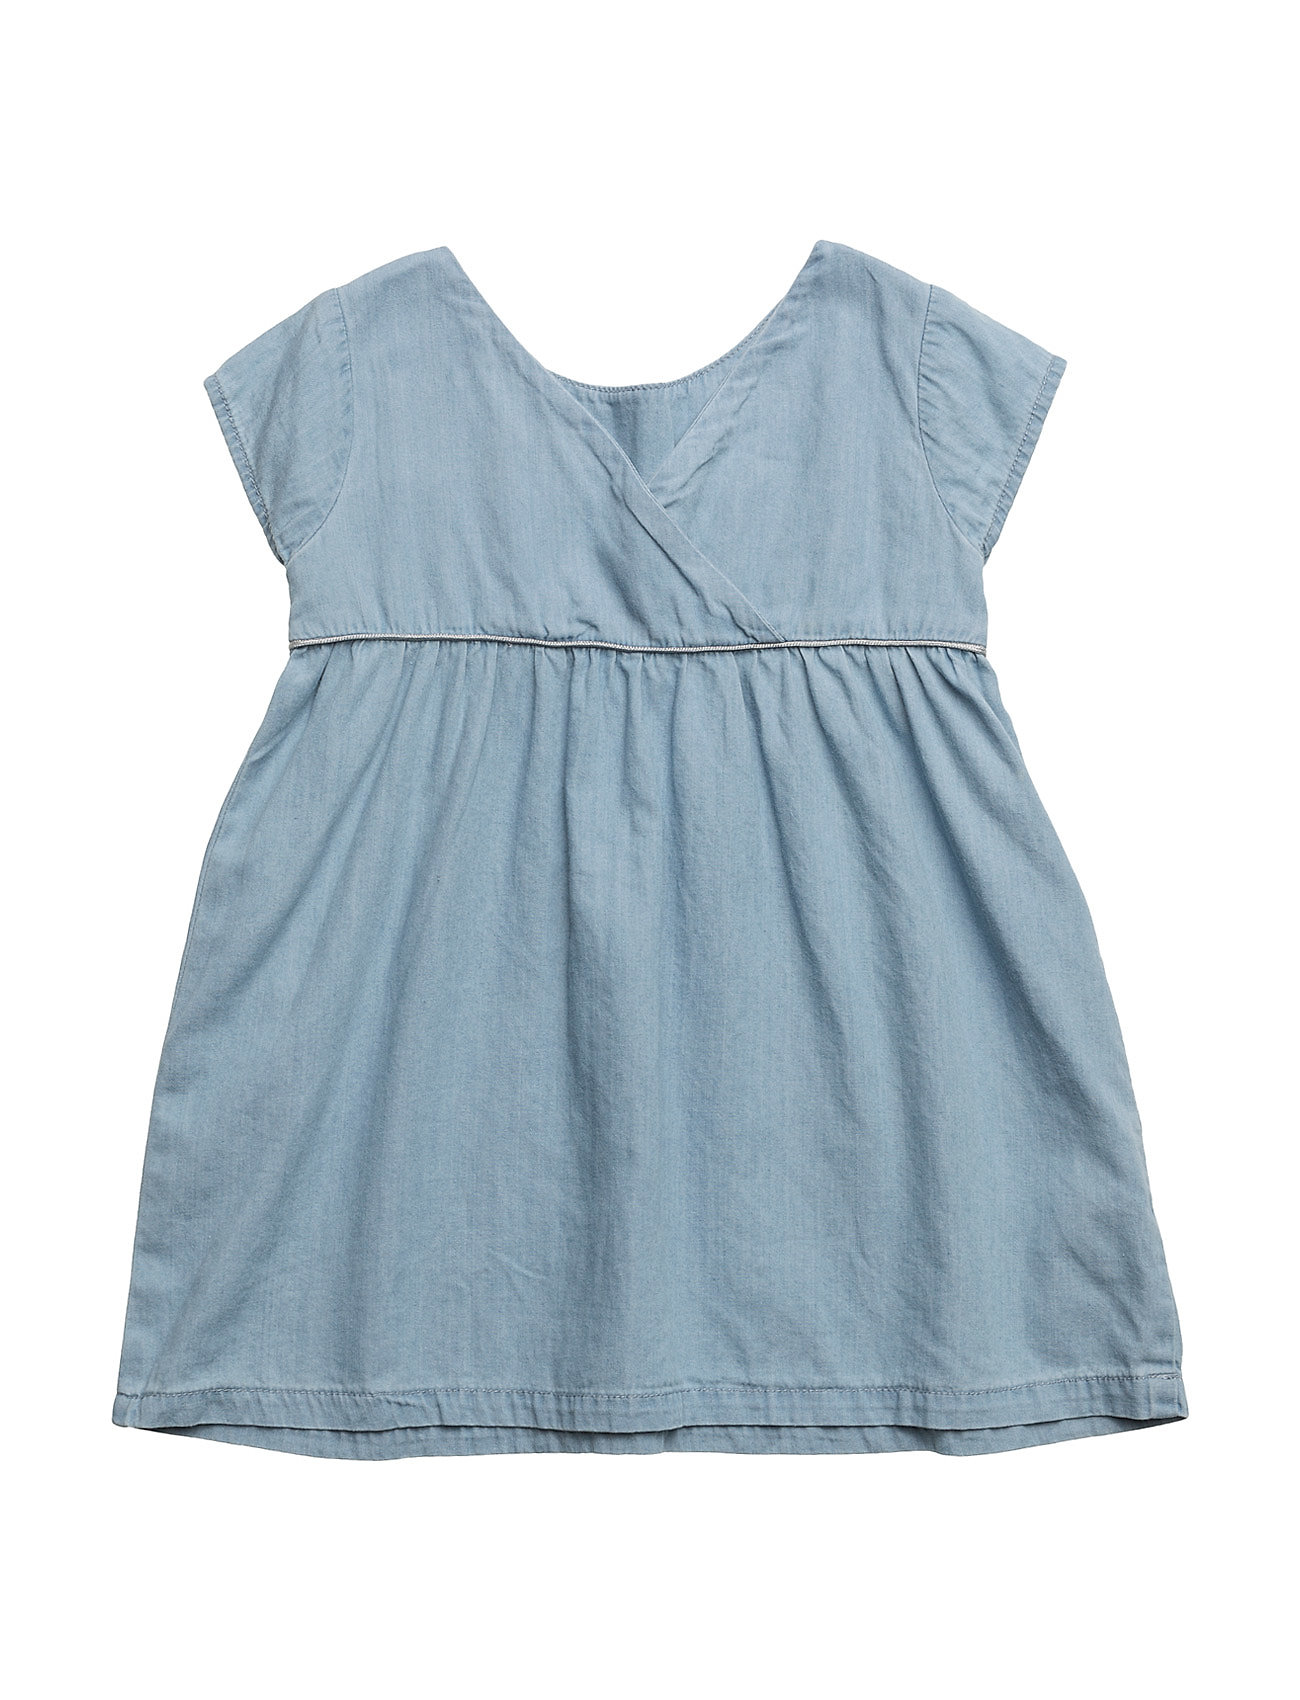 Light Denim Dress Mango Kids Kjoler til Børn i